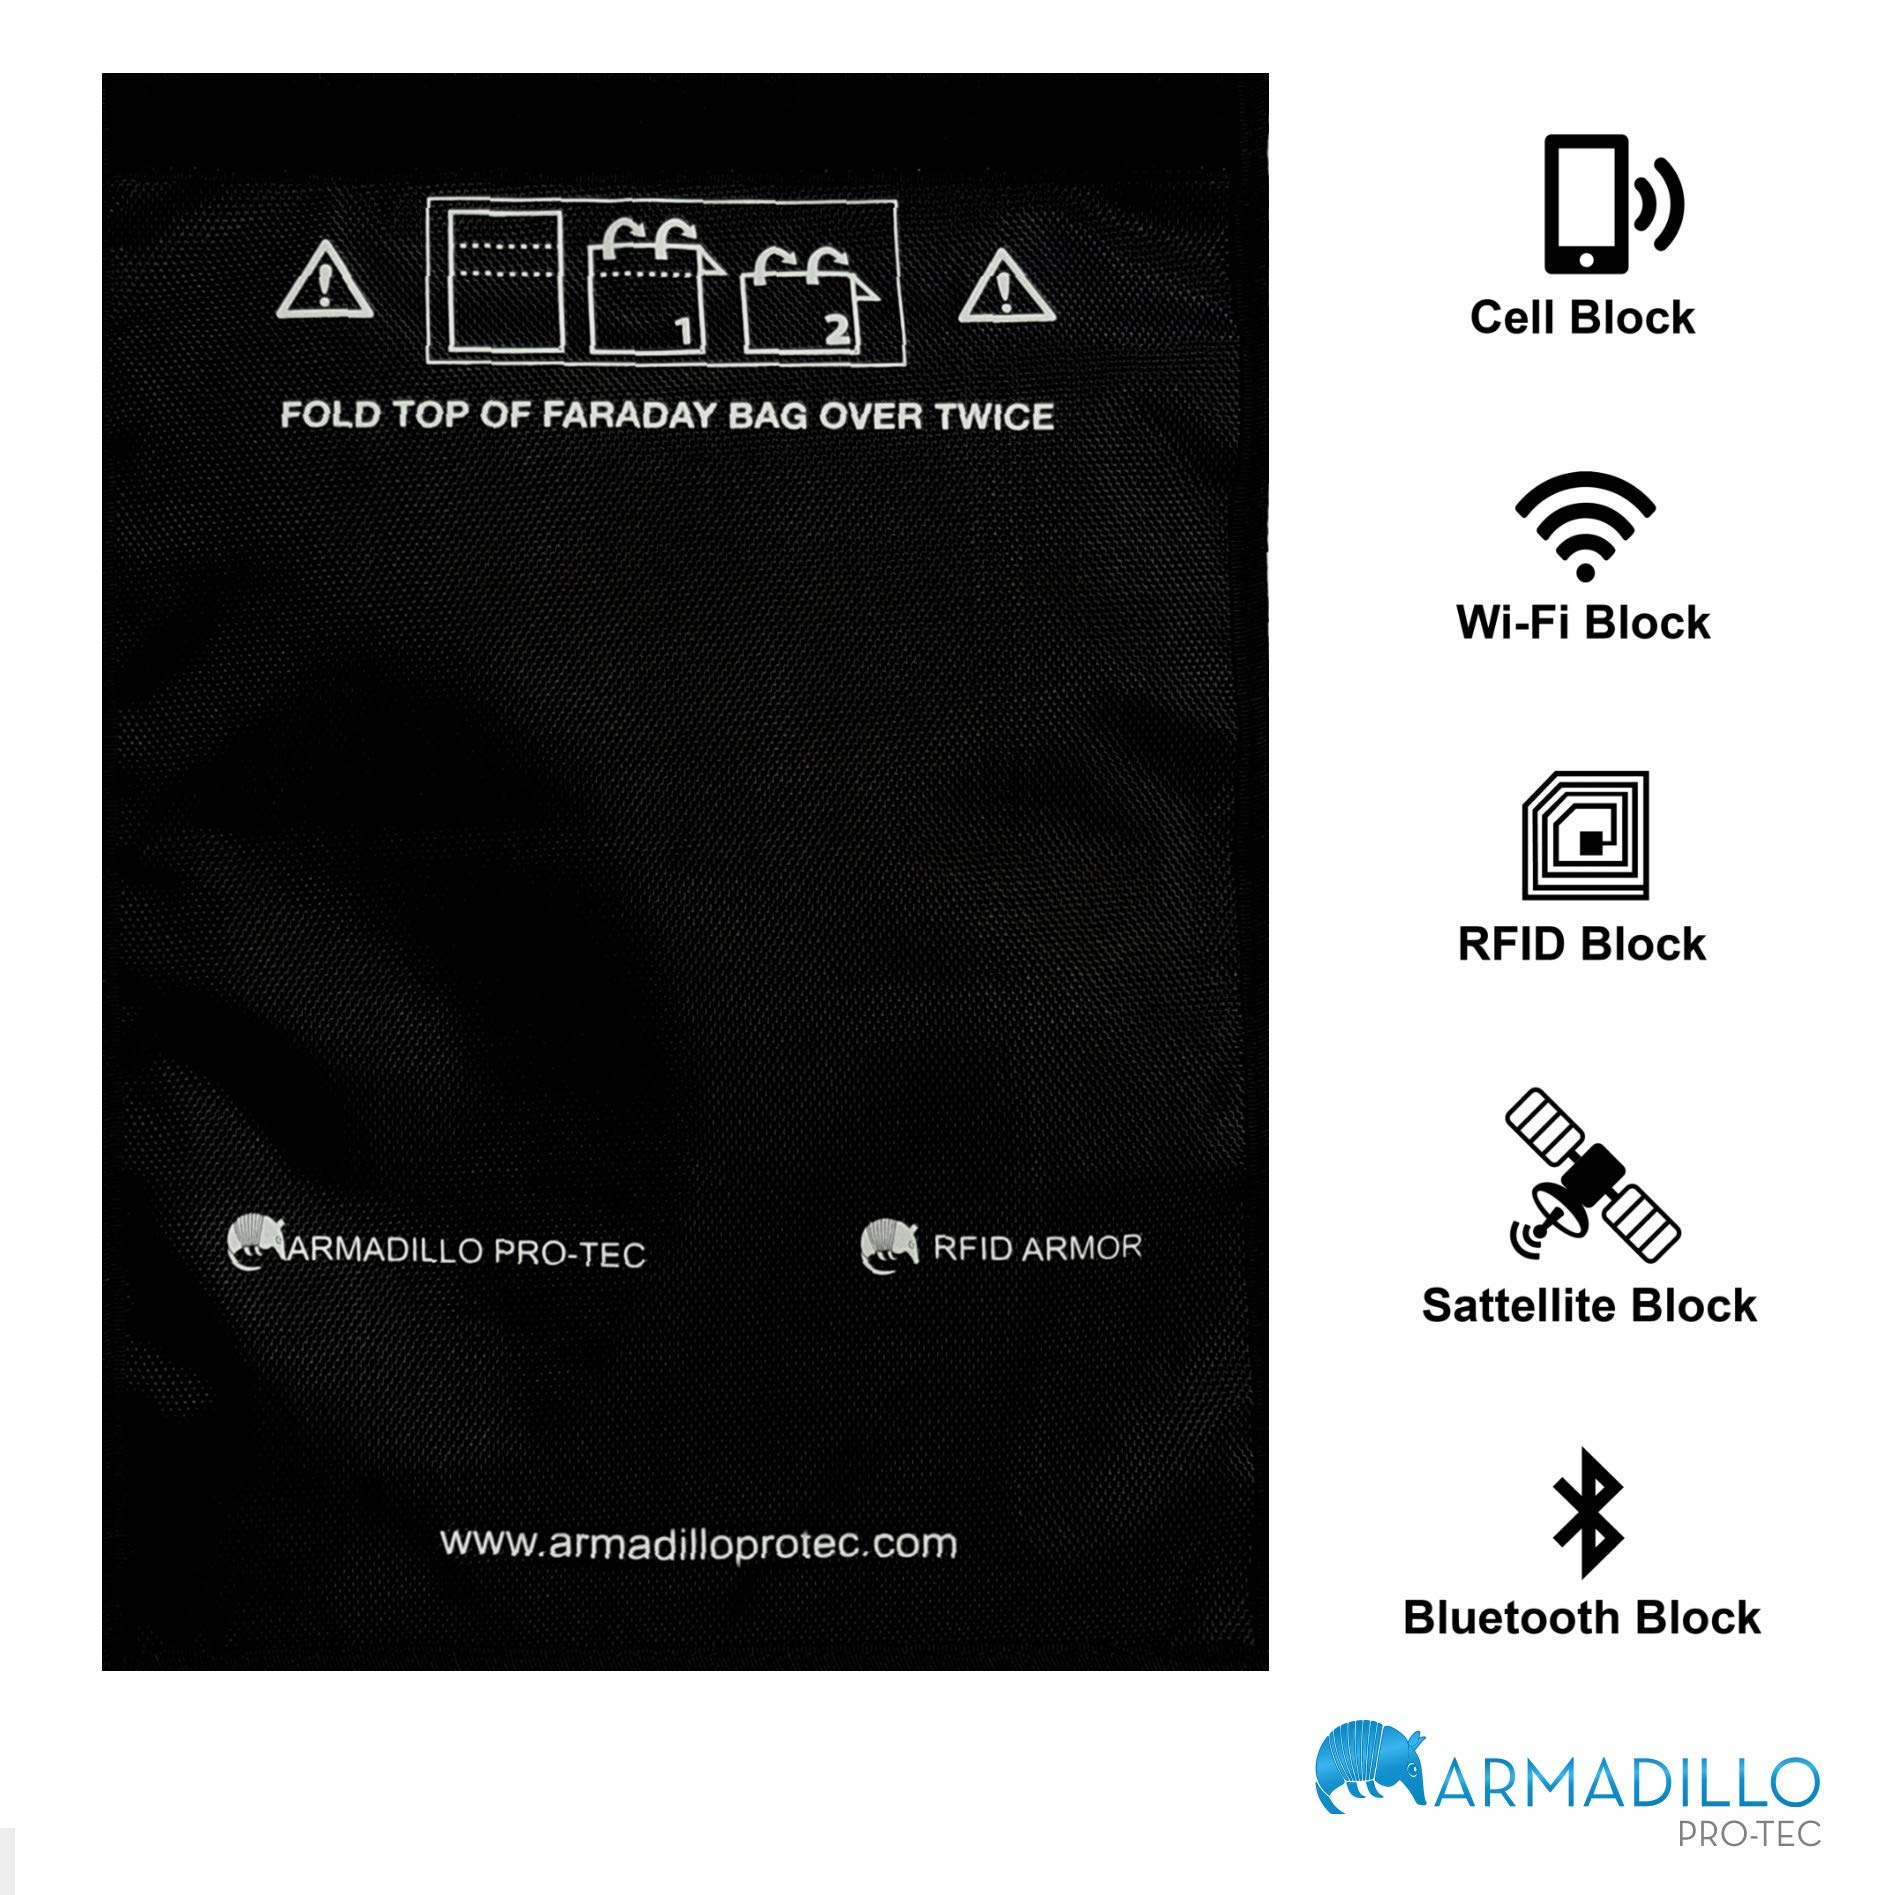 Faraday Bag for Tablets, Cell Phones, Car Key Fobs - Device Shielding for Law Enforcement, Military, Executive Privacy, Travel & Data Protection, Anti-Hacking & Anti-Tracking by Armadillo Pro-Tec